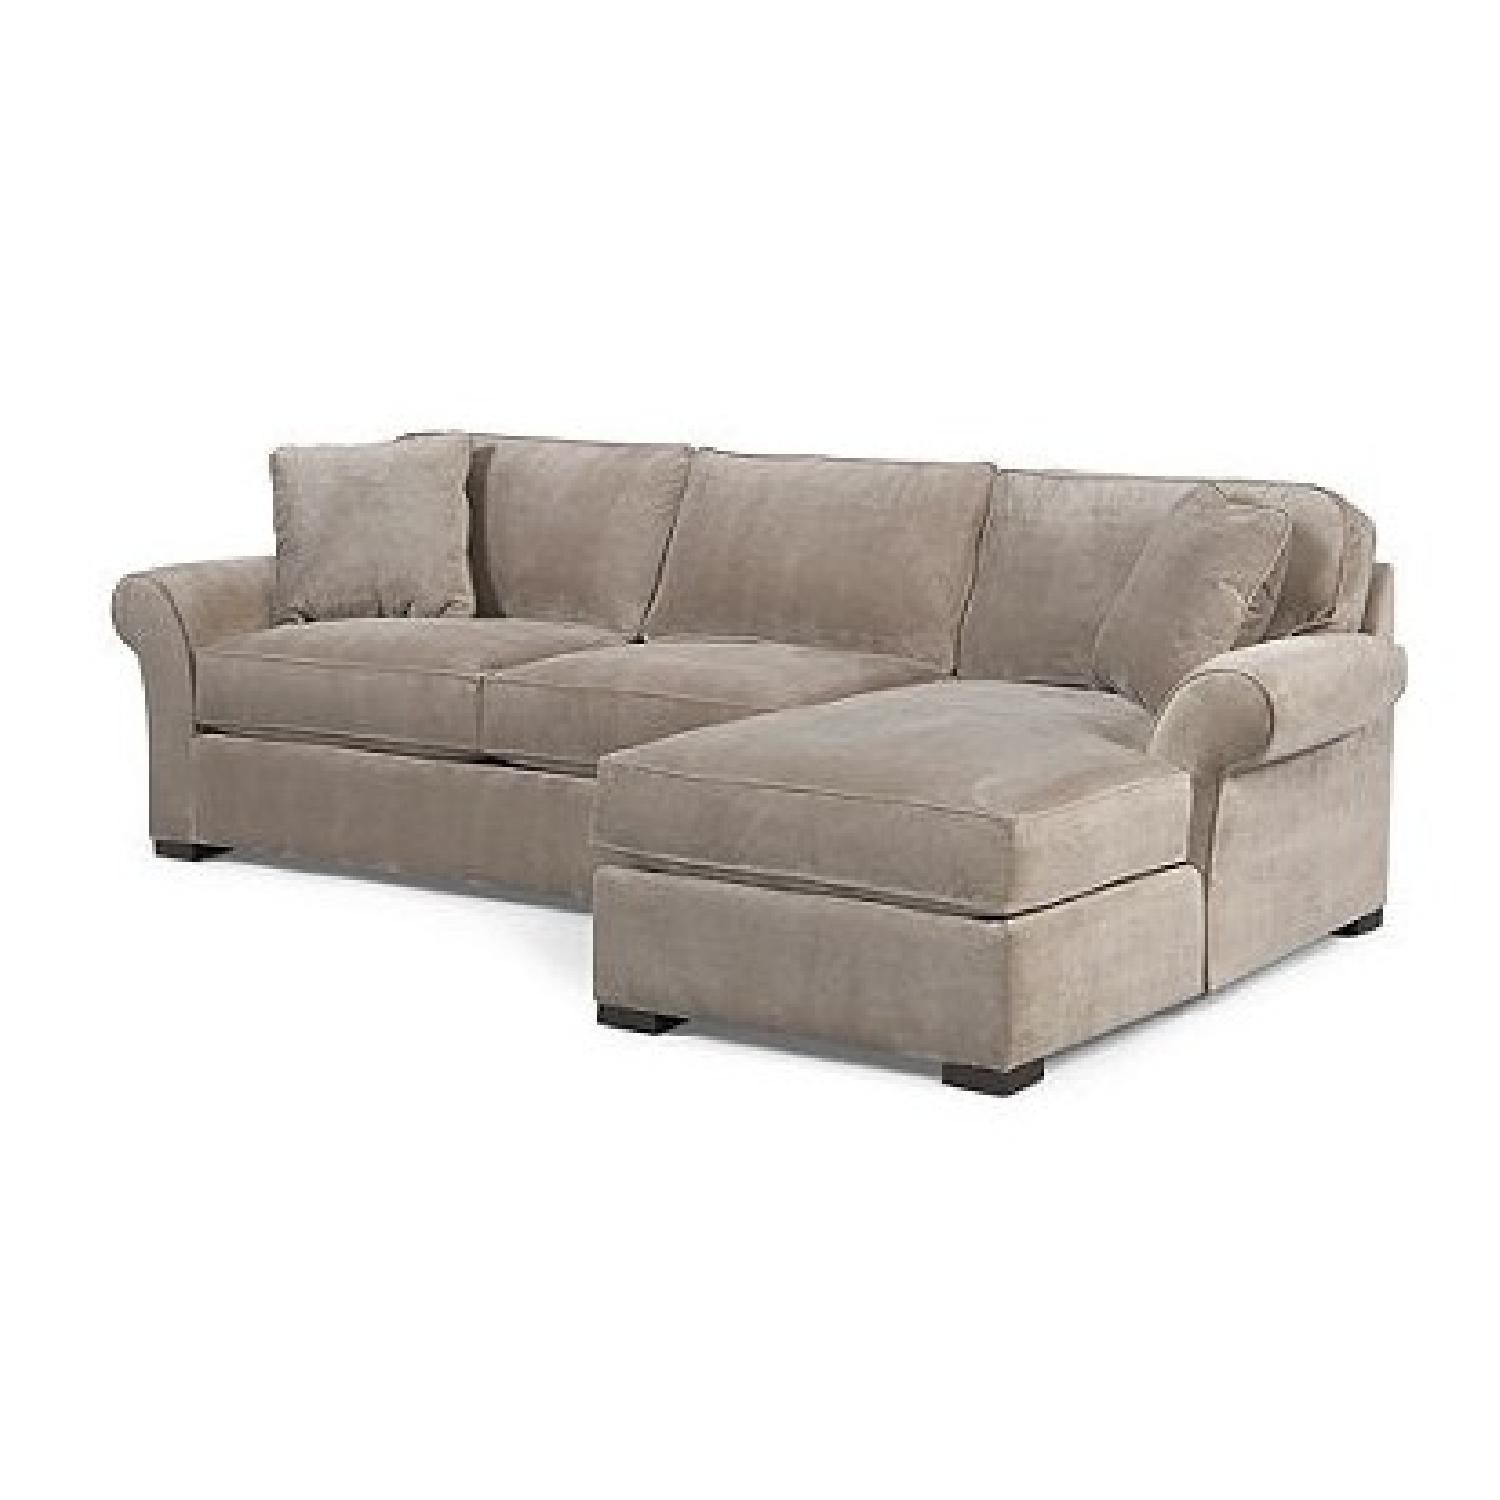 20 Best Collection Of Macys Sofas